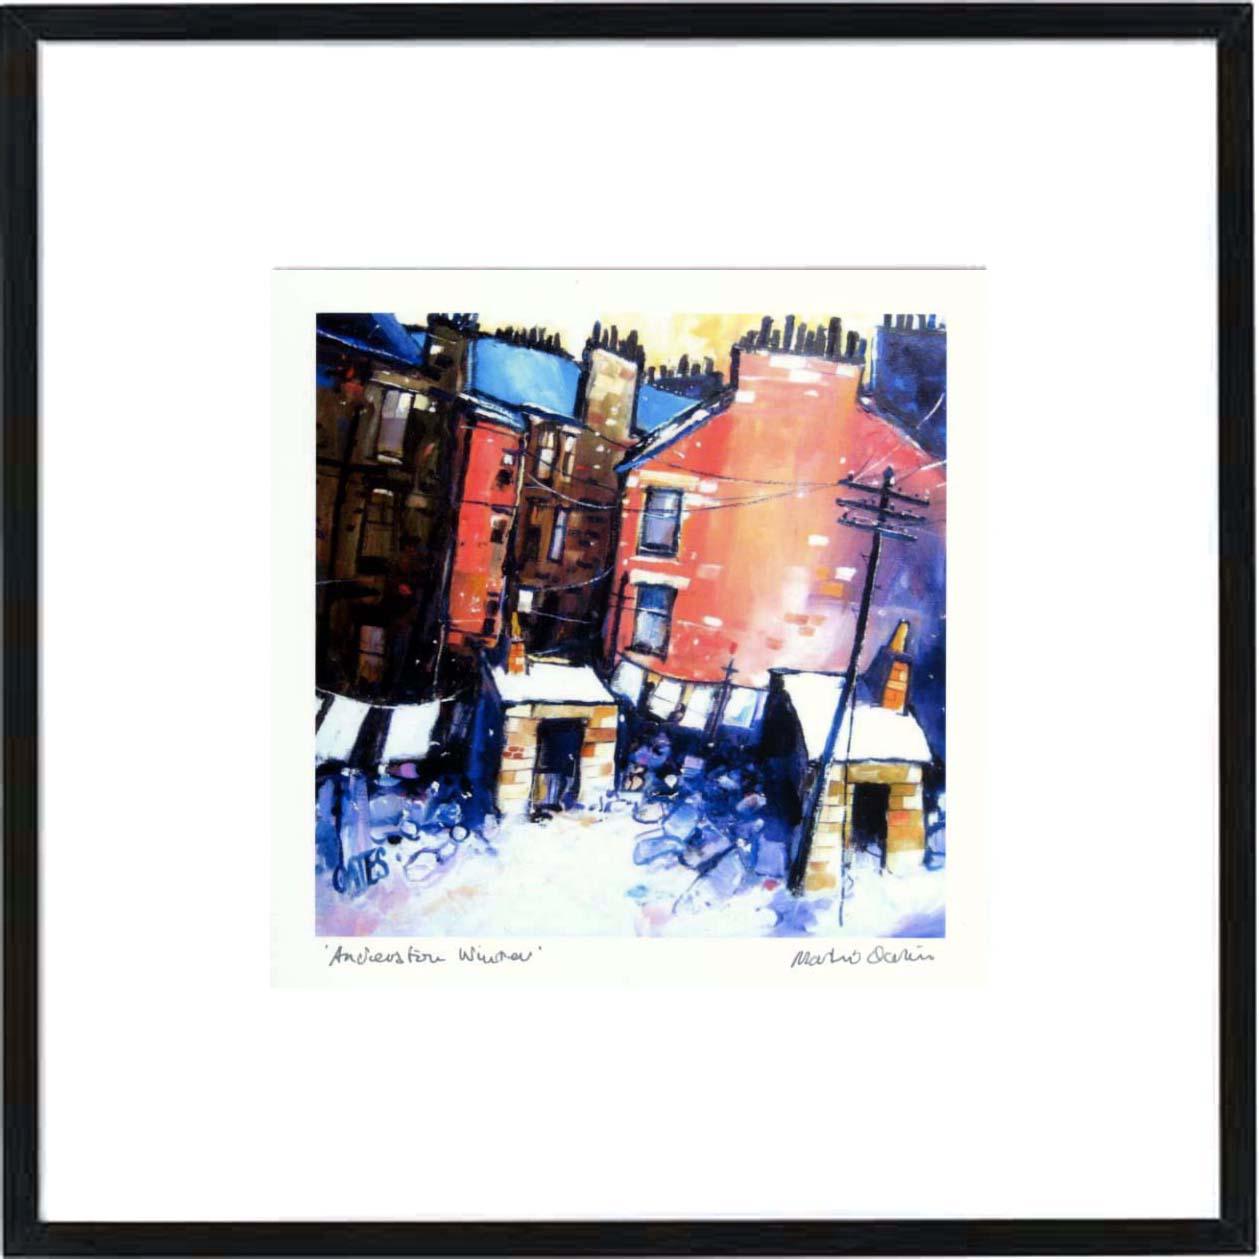 Anderston Winter Framed Print